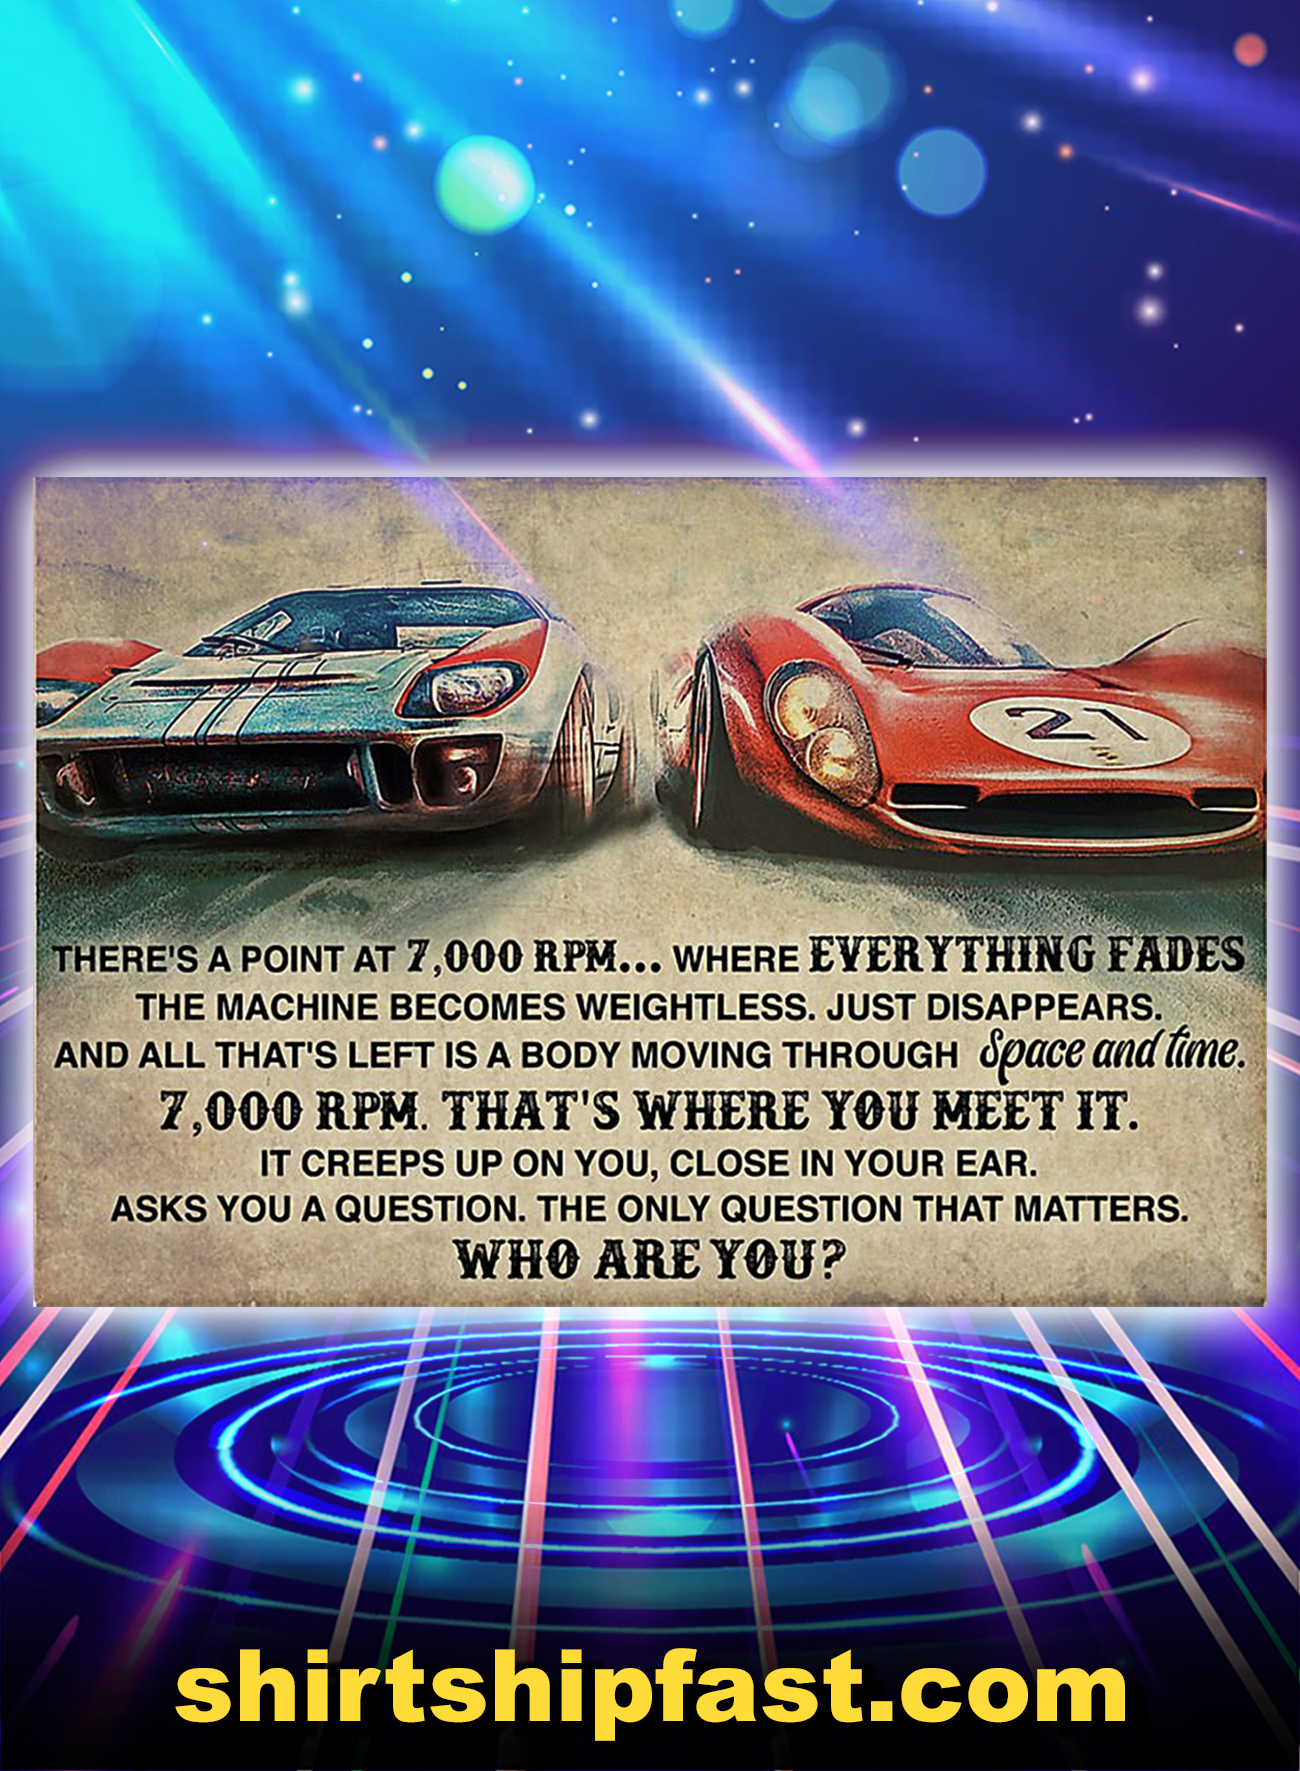 Car racing there's a point at 7000 RPM poster - A1